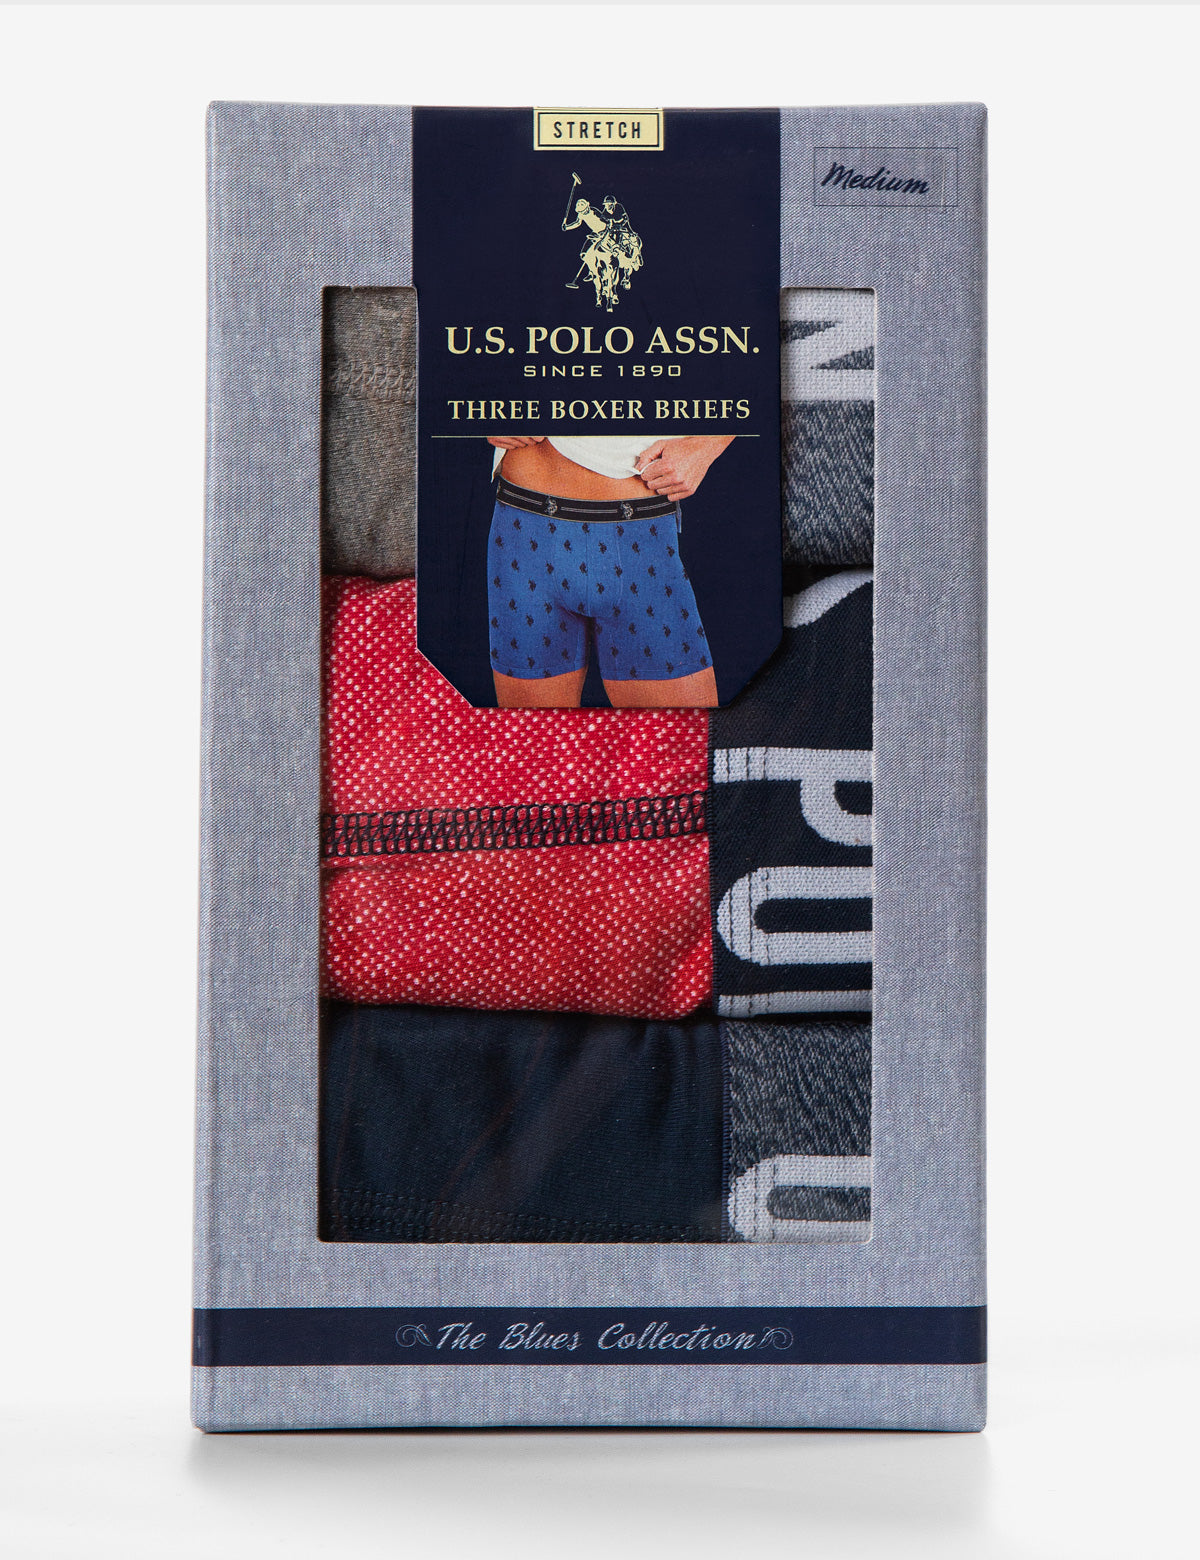 Blue Collection 3PK Stretch Boxer Brief - U.S. Polo Assn.